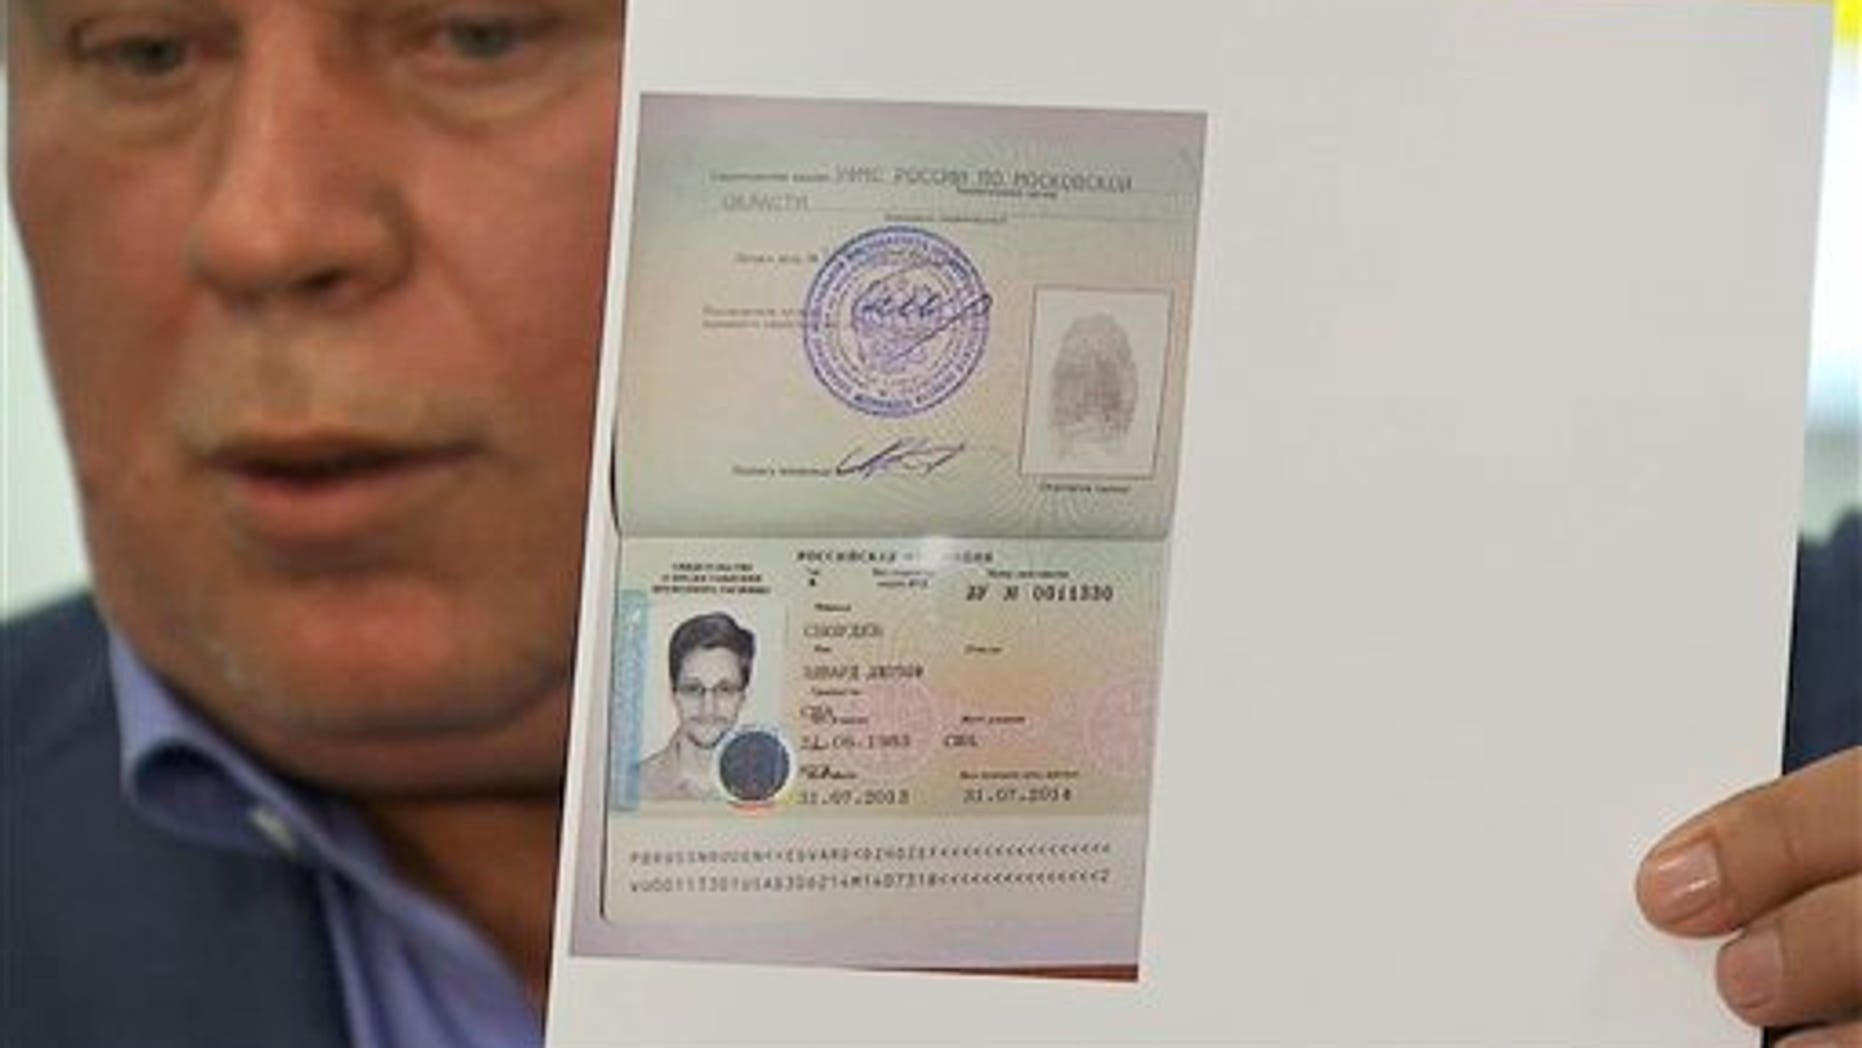 Aug. 1, 2013 -  Russian lawyer Anatoly Kucherena showing a temporary document to allow National Security Agency leaker Edward Snowden to cross the border into Russia while speaking to the media after visiting Snowden at Sheremetyevo airport outside Moscow, Snowden has received asylum in Russia for one year and left the transit zone of Moscow's airport, his lawyer said Thursday. (image taken from APTV.)